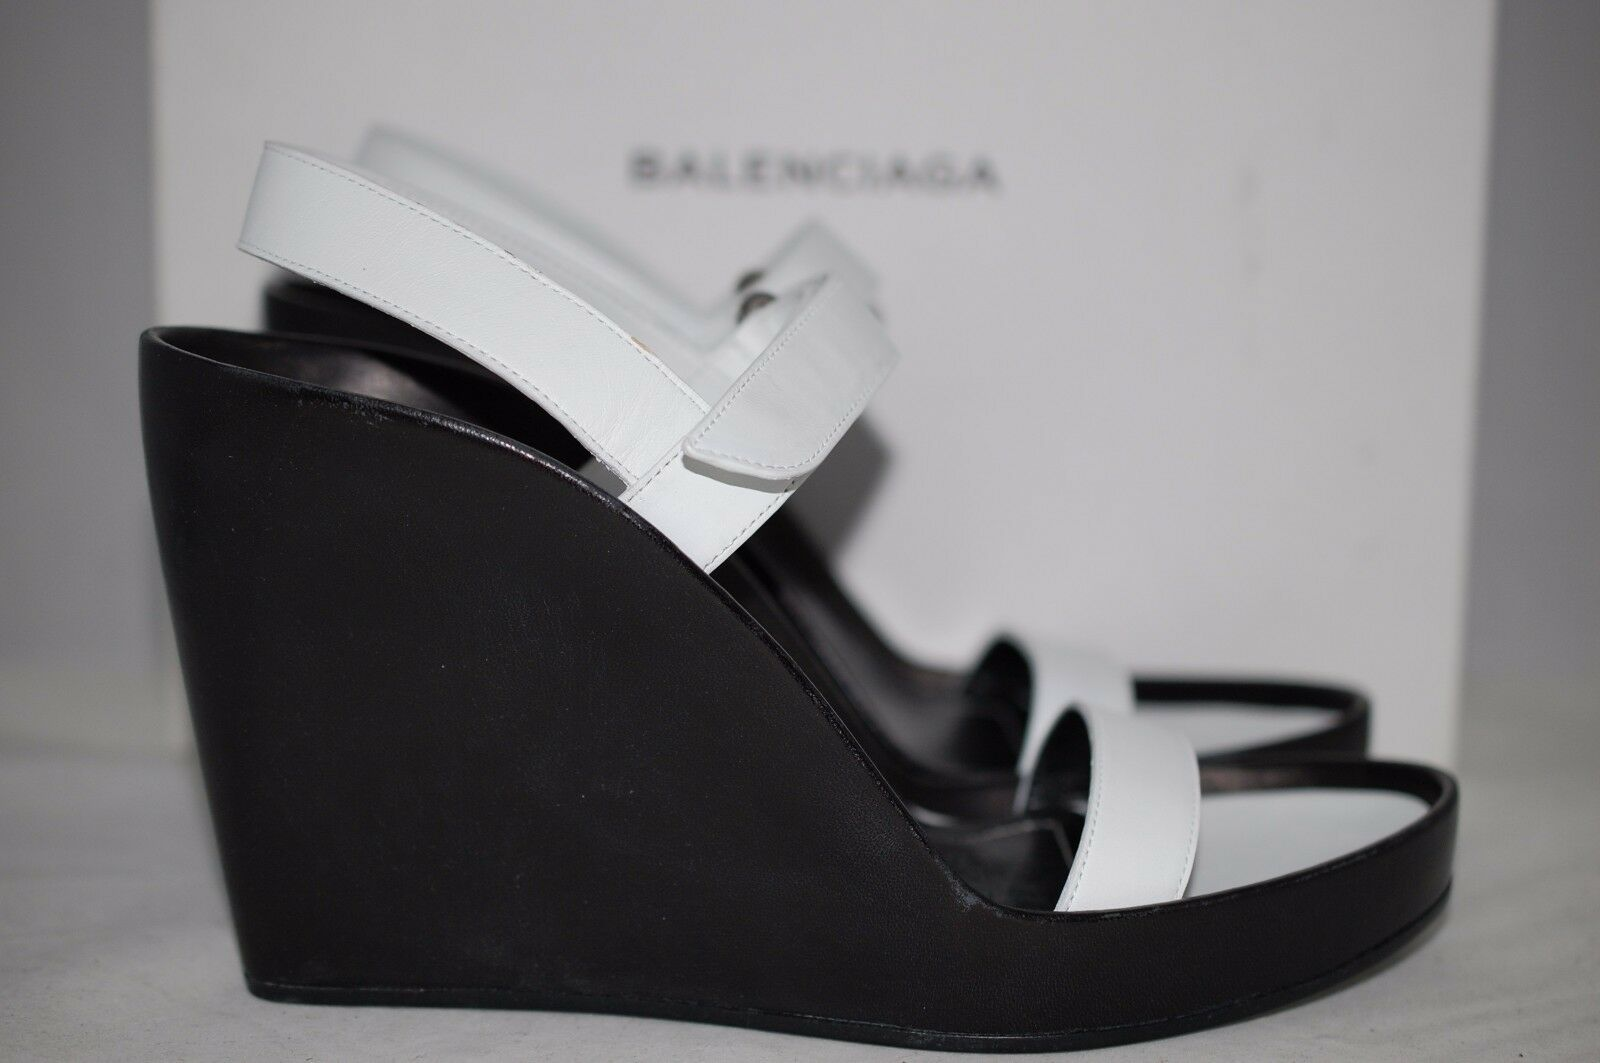 NIB  745 BALENCIAGA Pads Wedge White White White Leather Sandal Black Heel shoes 9 US  39 EU 18175e